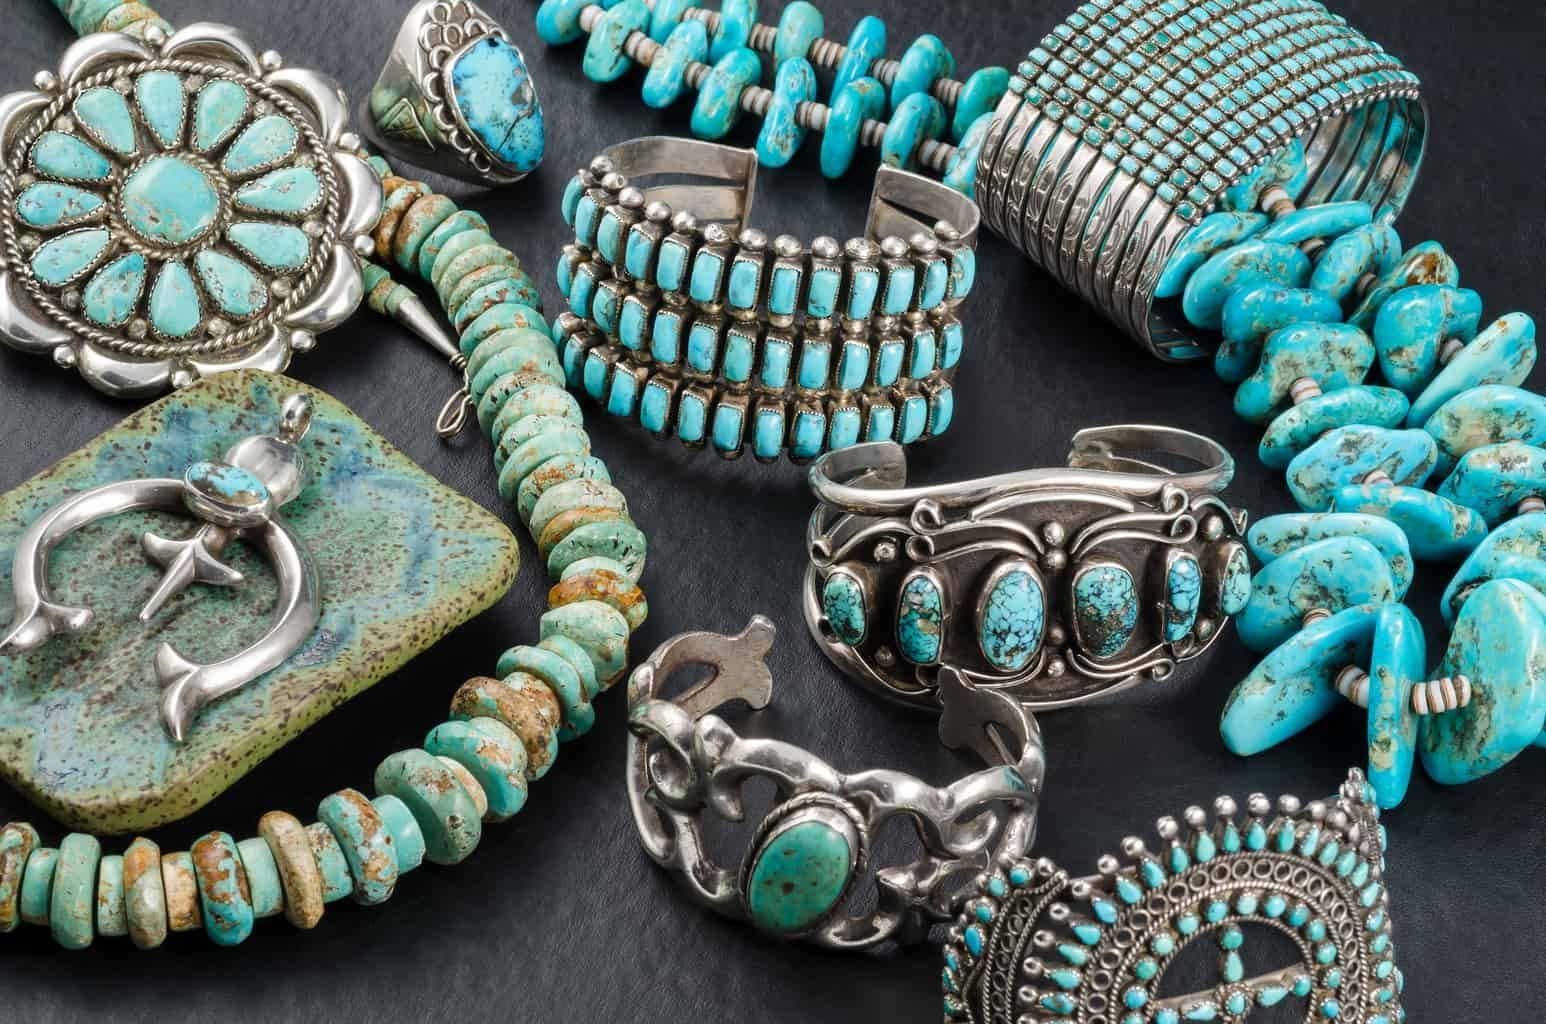 Photo of Native American Turquoise Jewelry Through History and Today